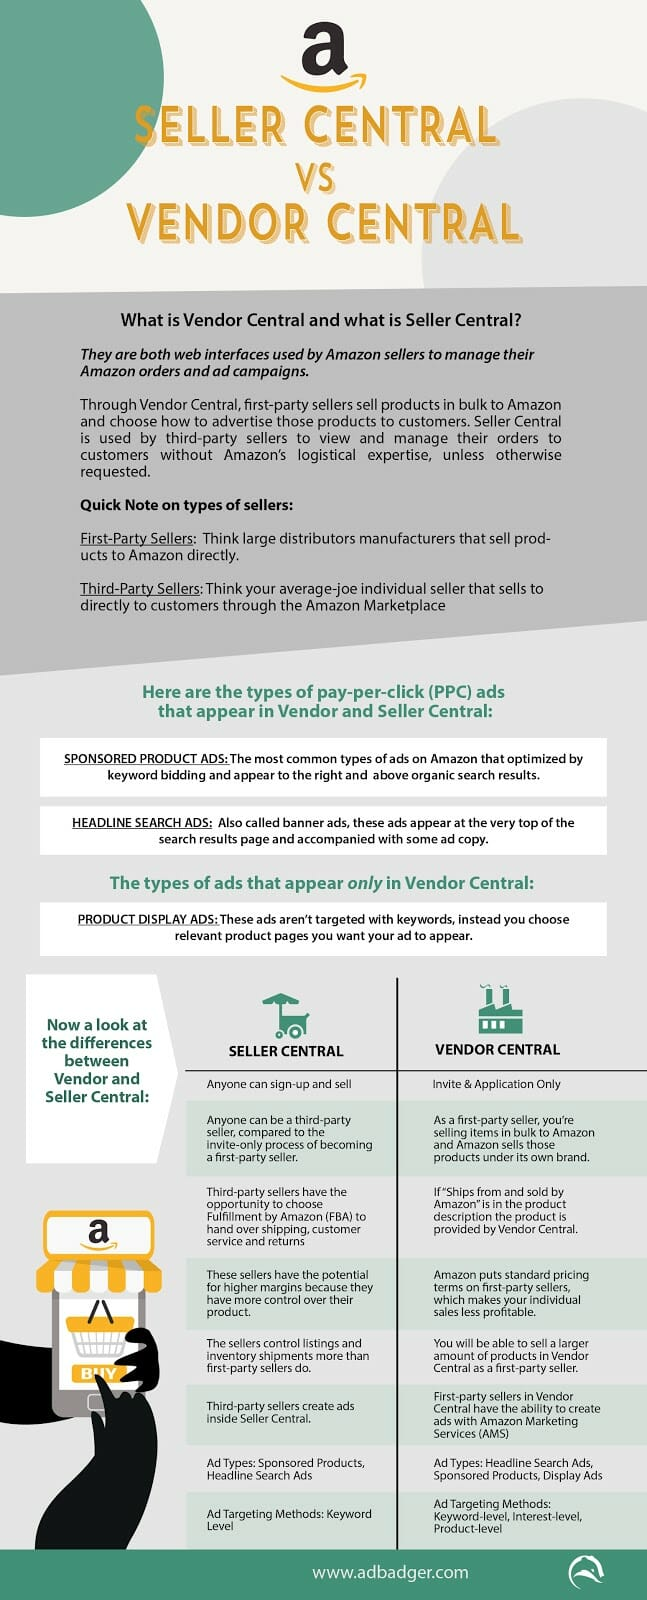 INFOGRAPHIC SELLERS CENTRAL VS VENDOR CENTRAL 1